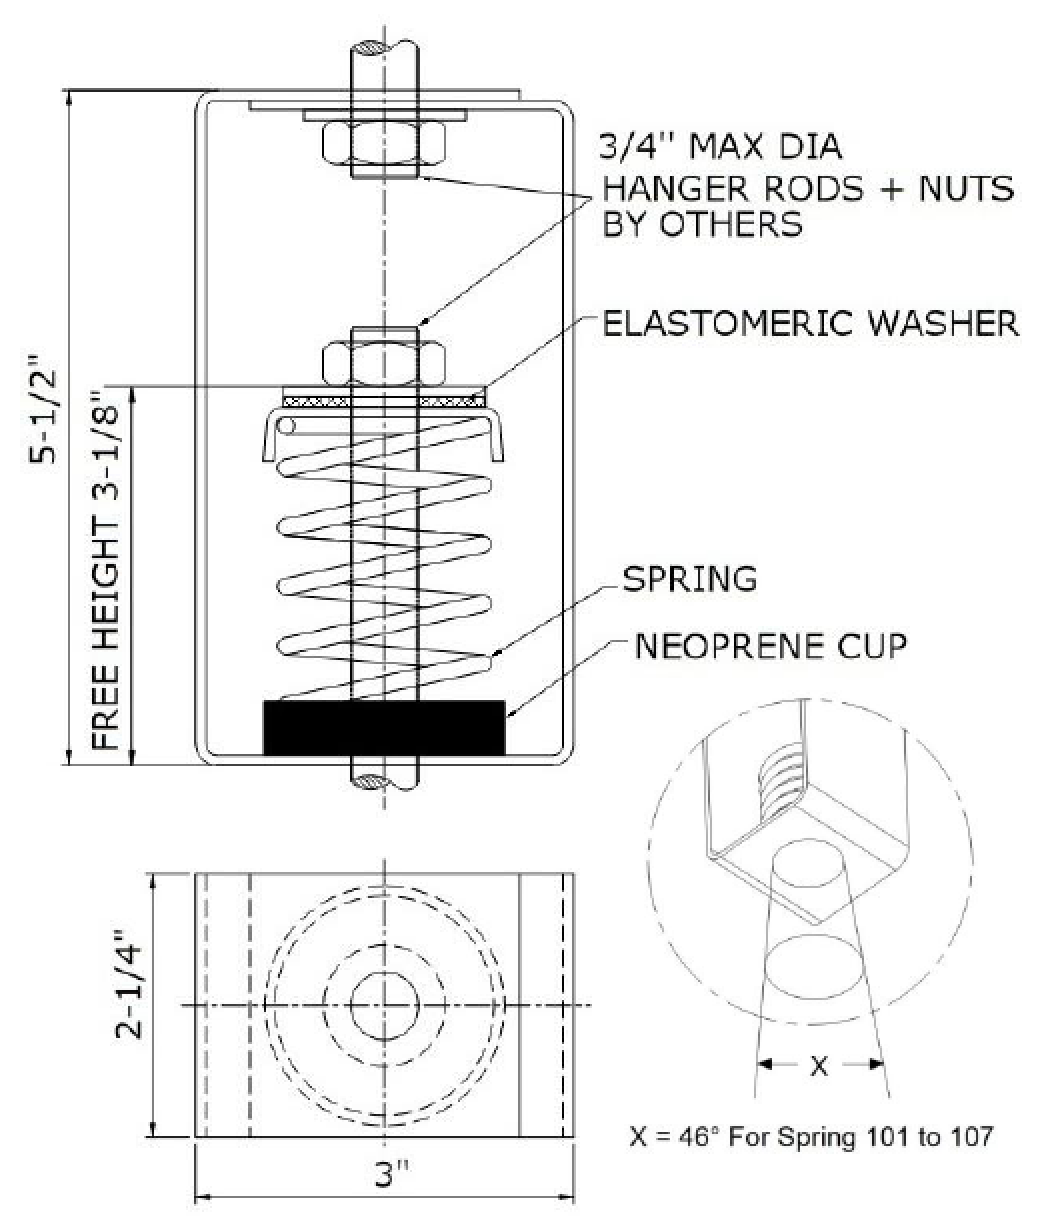 isometric drawing of spring hanger showing dimensions